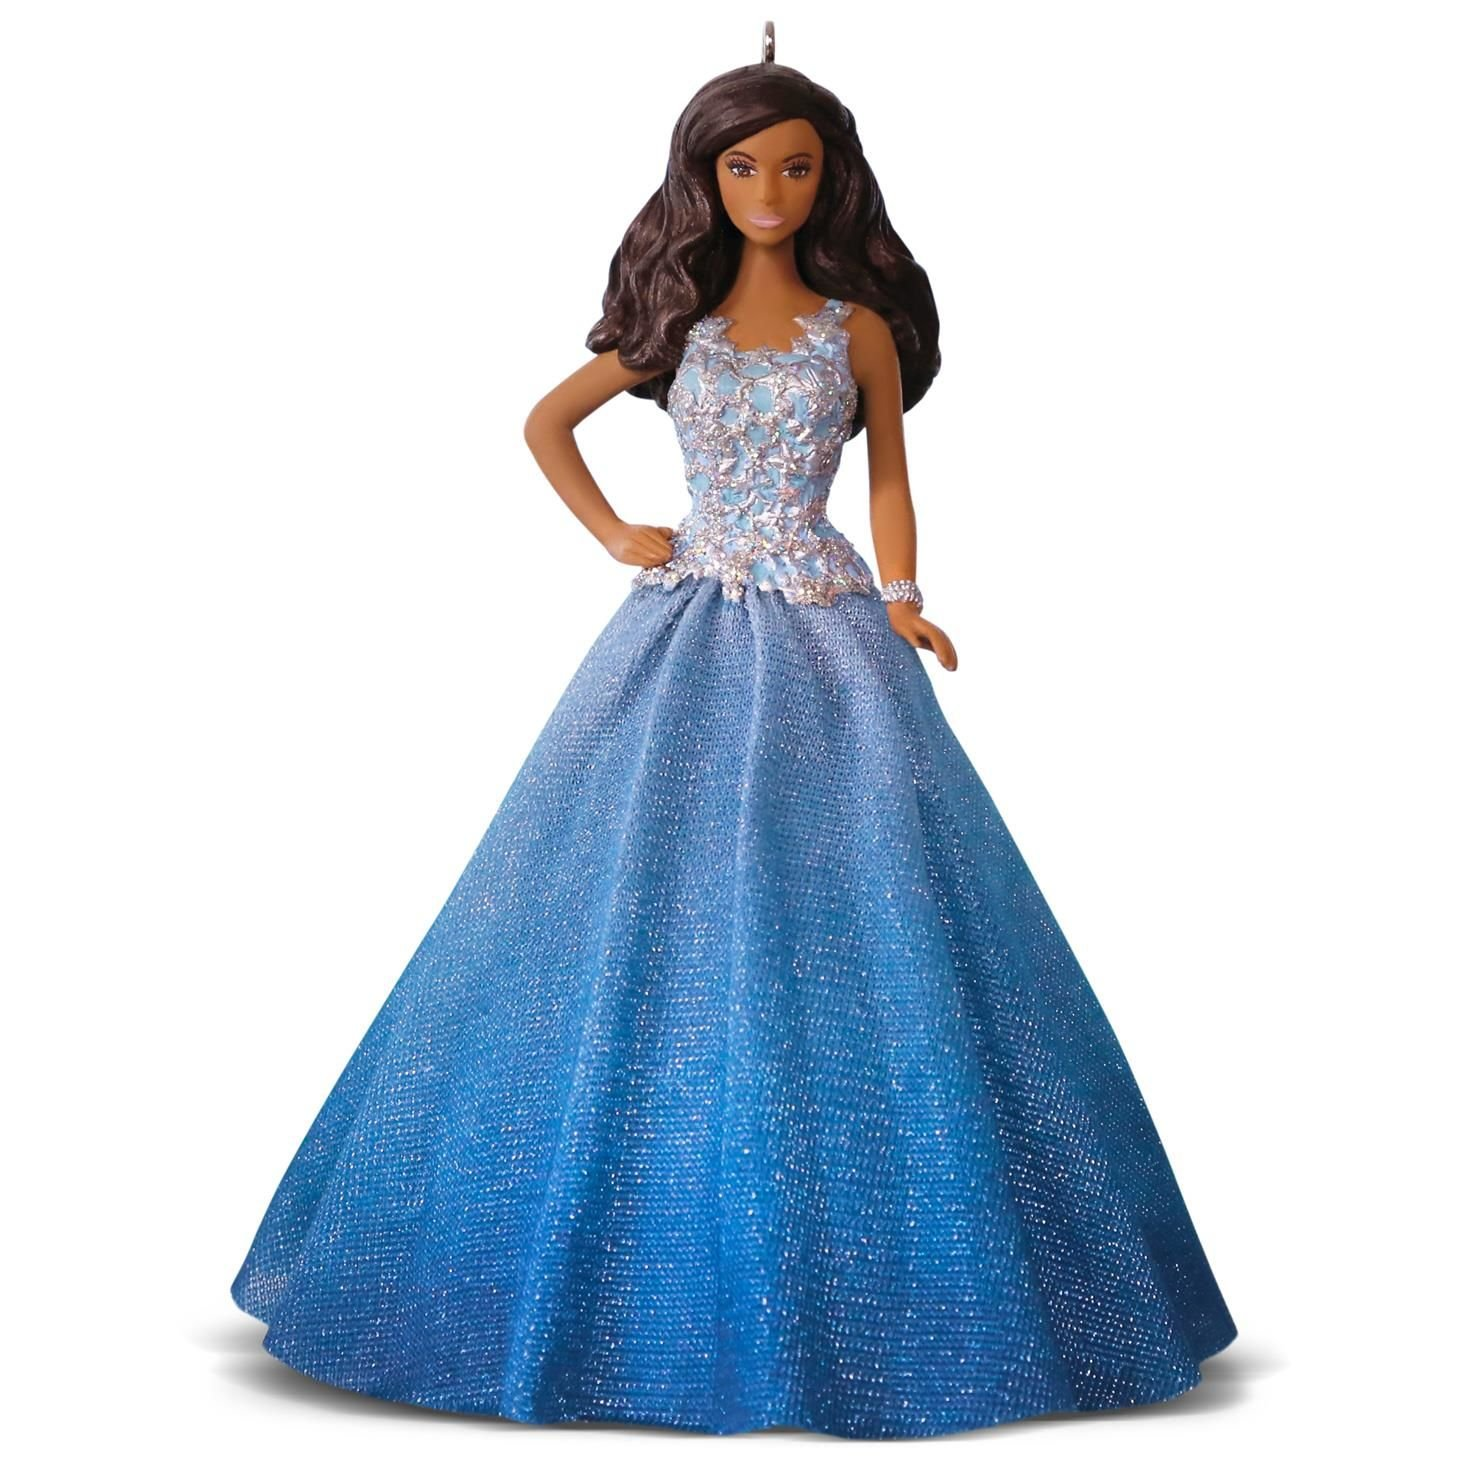 African-American Holiday Barbie